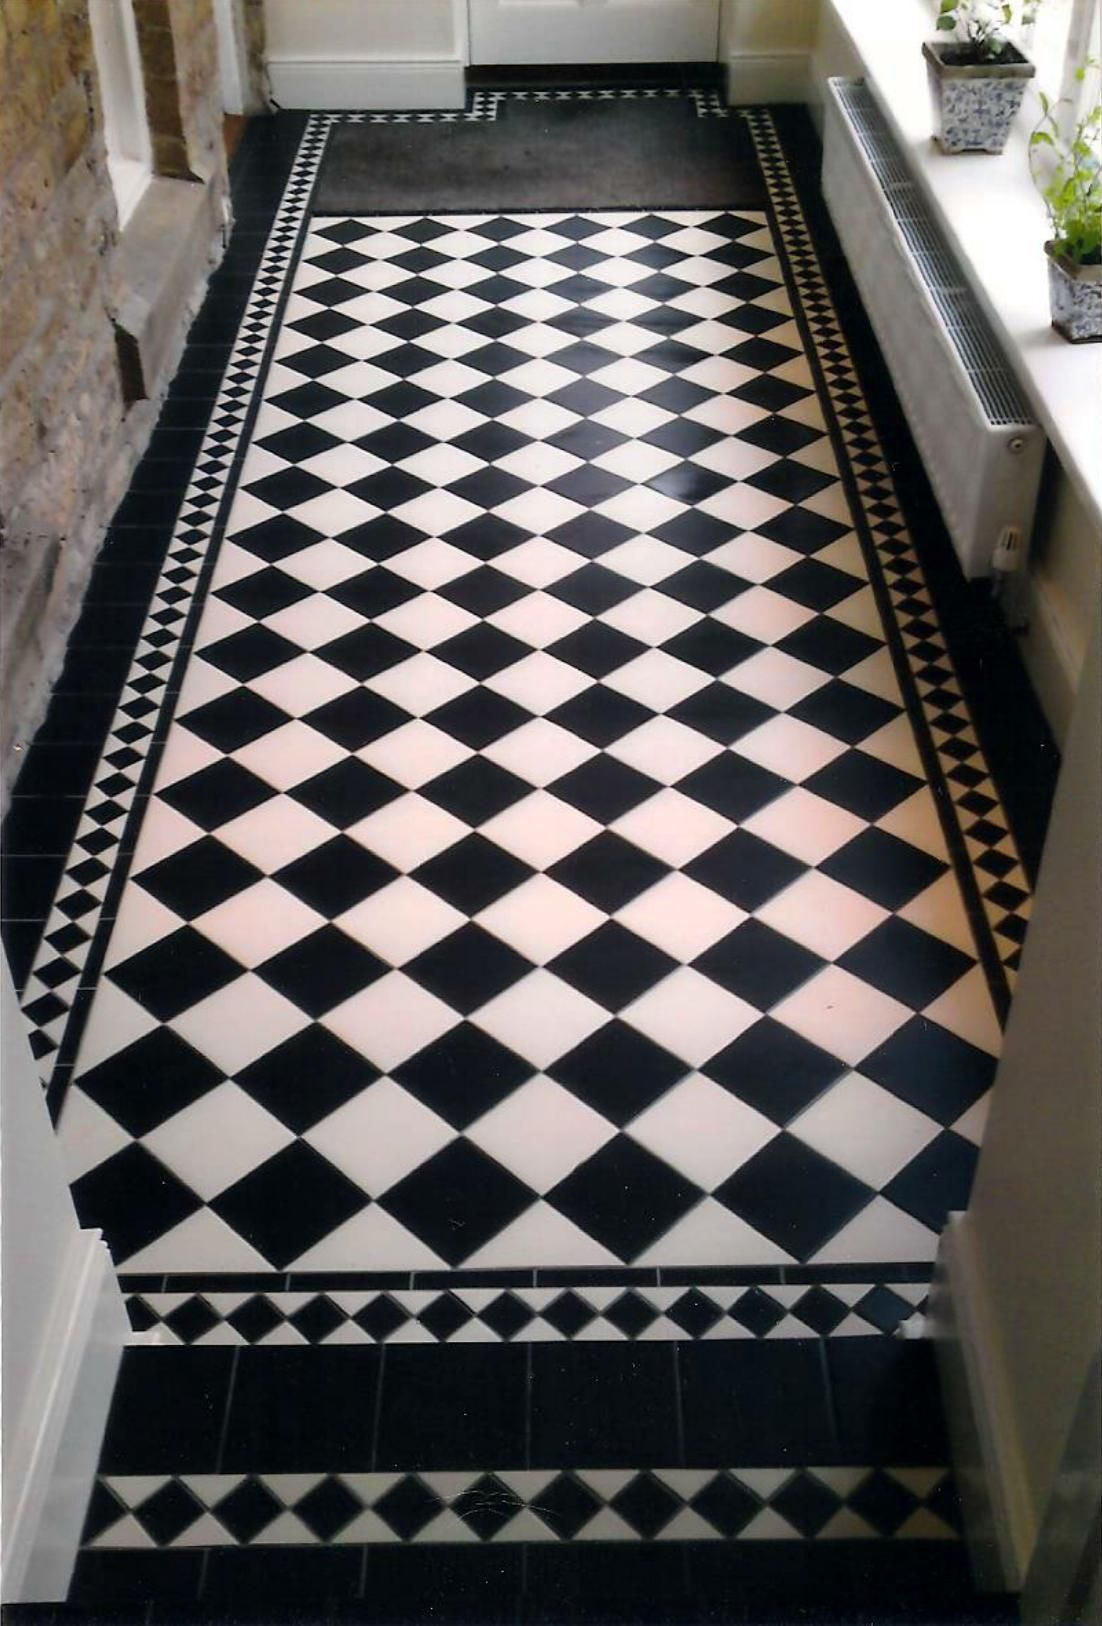 PIN 10 These tessellated tiles create a classic period look